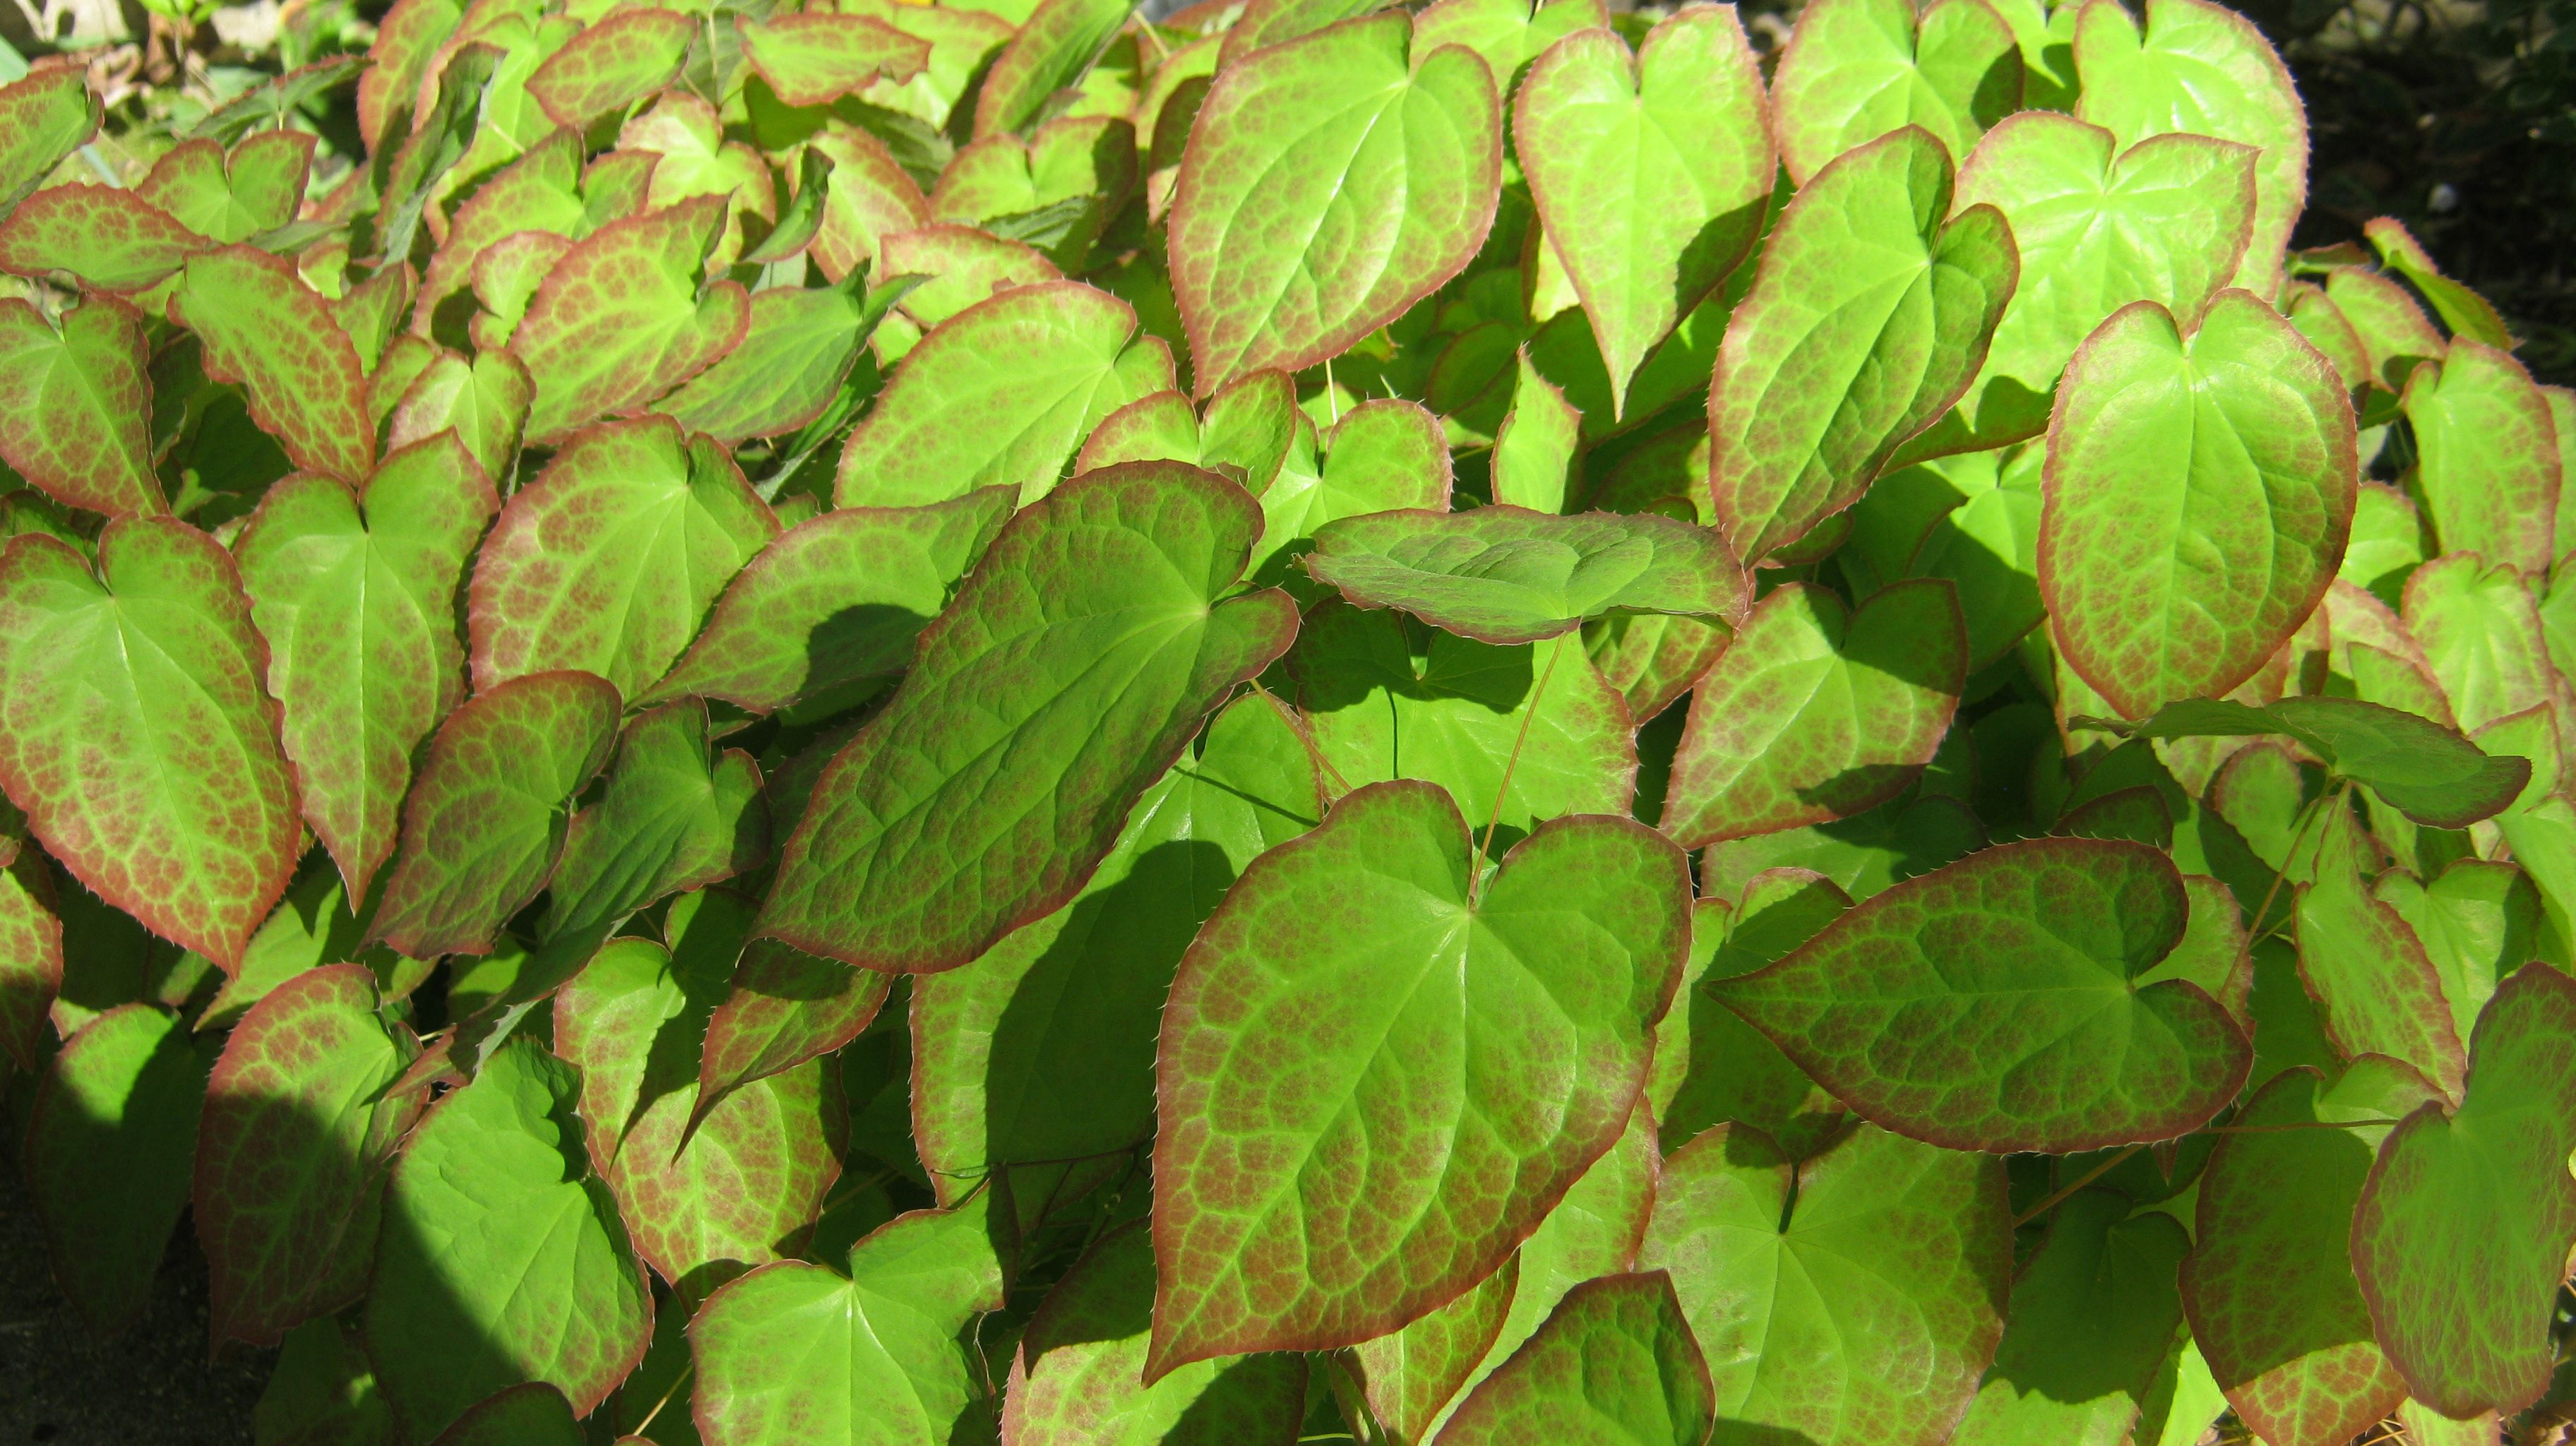 Epimedium also known as horny goat weed this splendid perennial epimedium also known as horny goat weed this splendid perennialgroundcover mightylinksfo